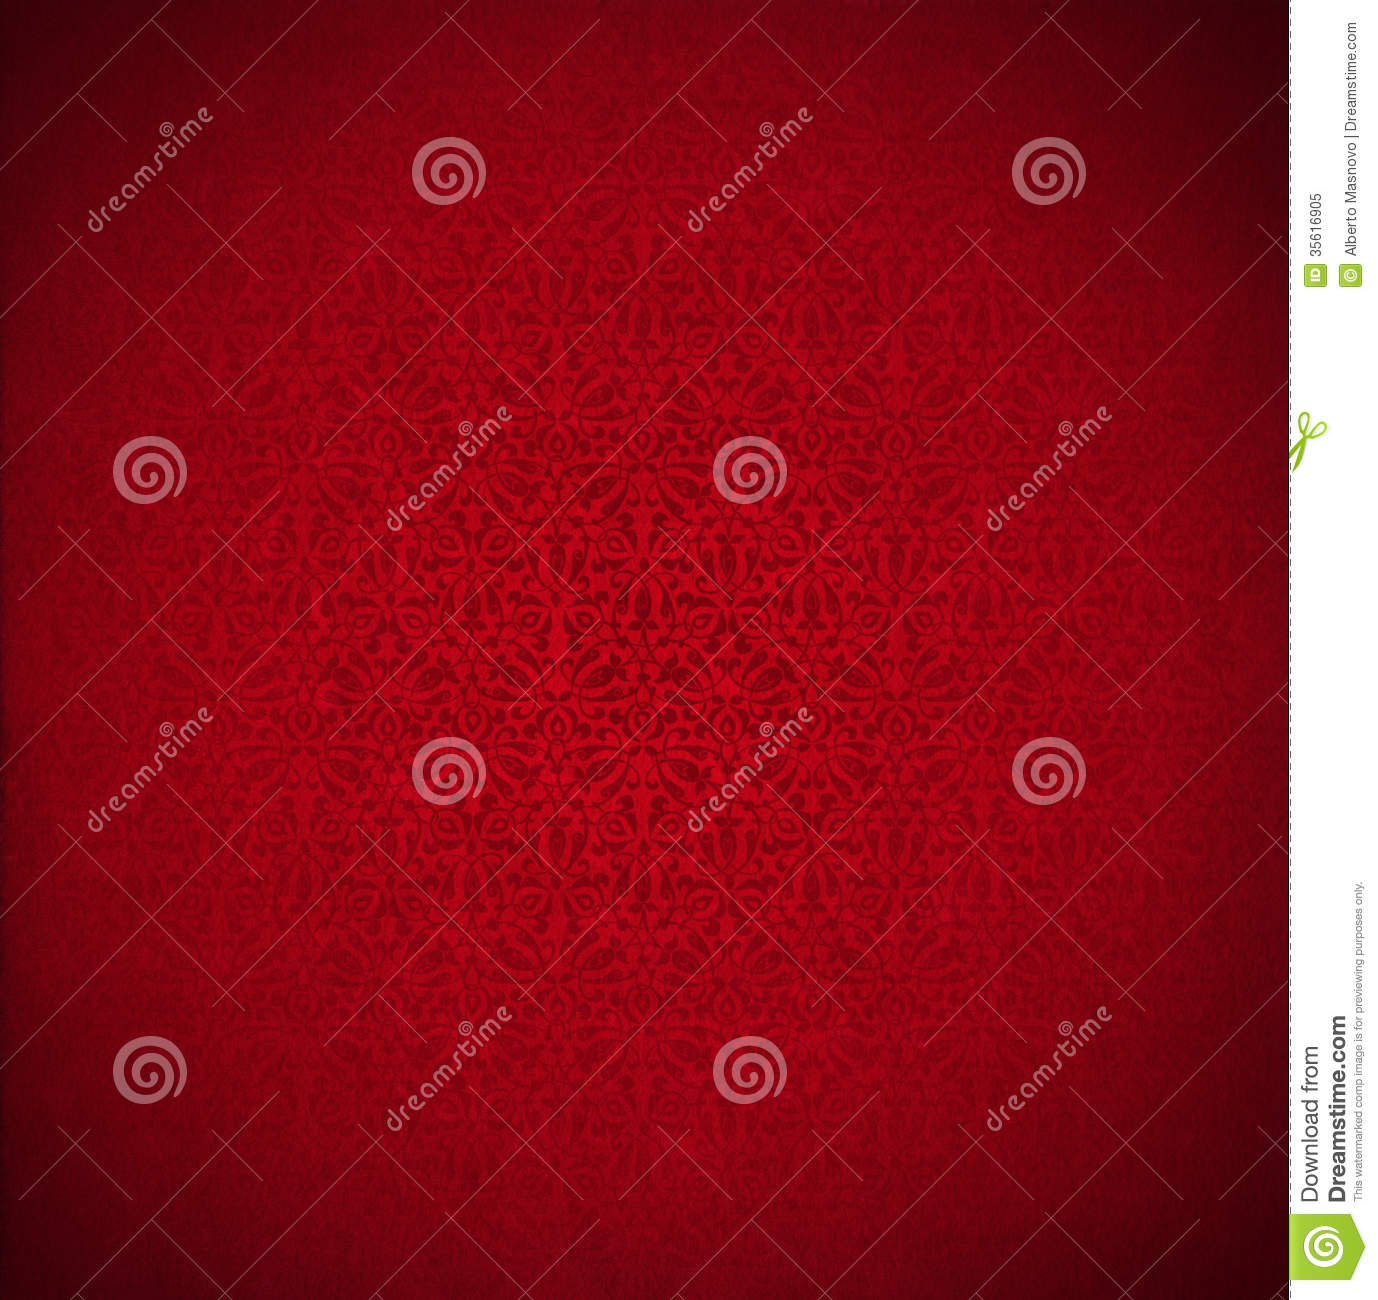 background floral ornate red template texture velvet